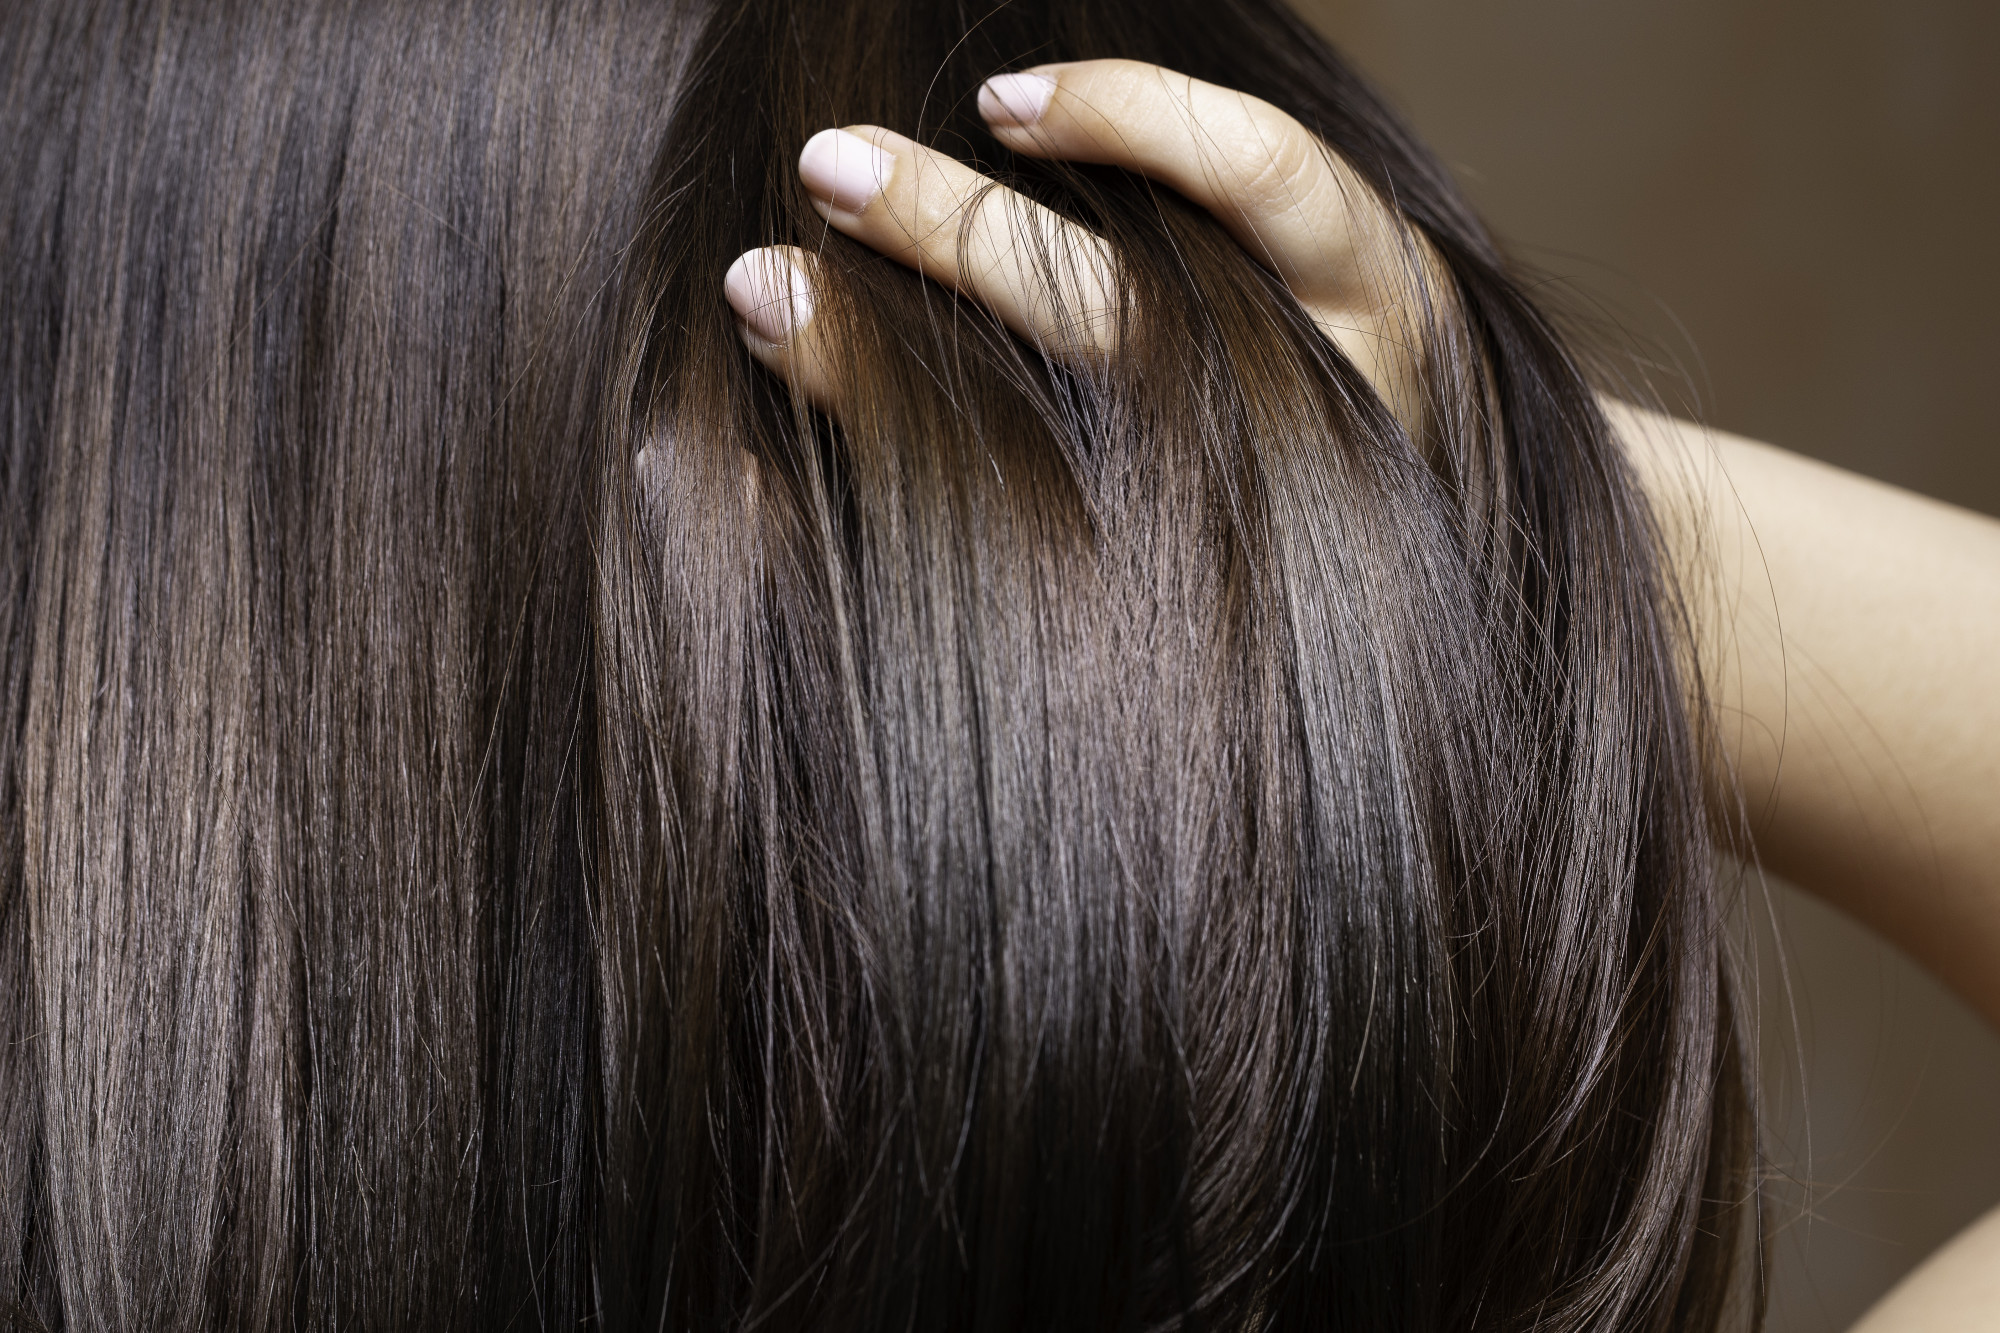 How to Condition Hair the Right Way: All the Steps You Should Take